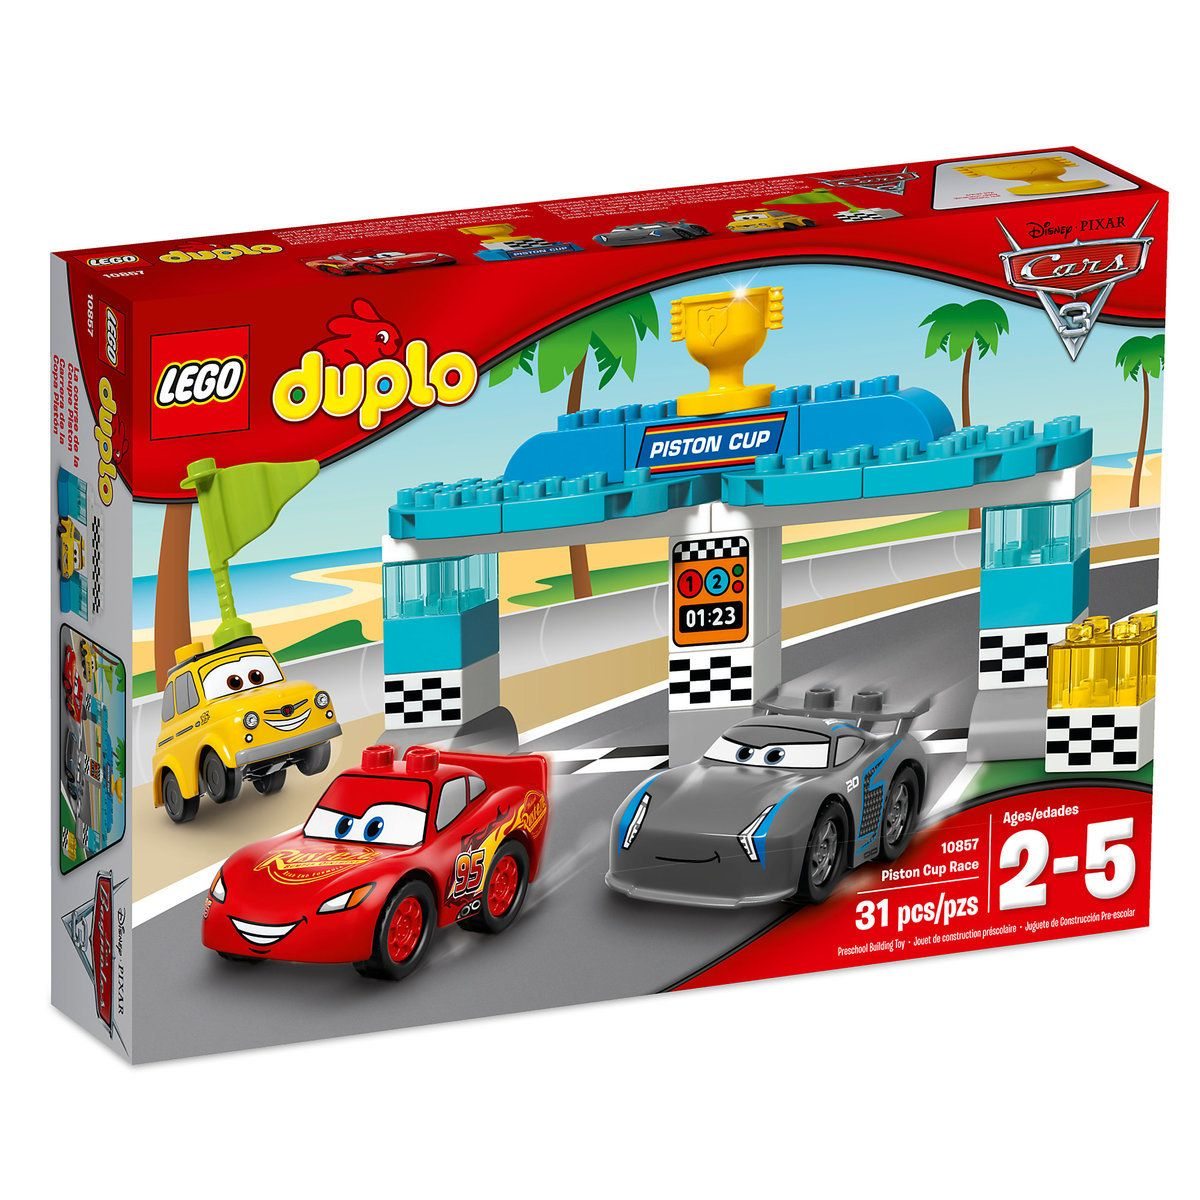 Piston Cup Race LEGO Duplo Playset Cars 3 (With images